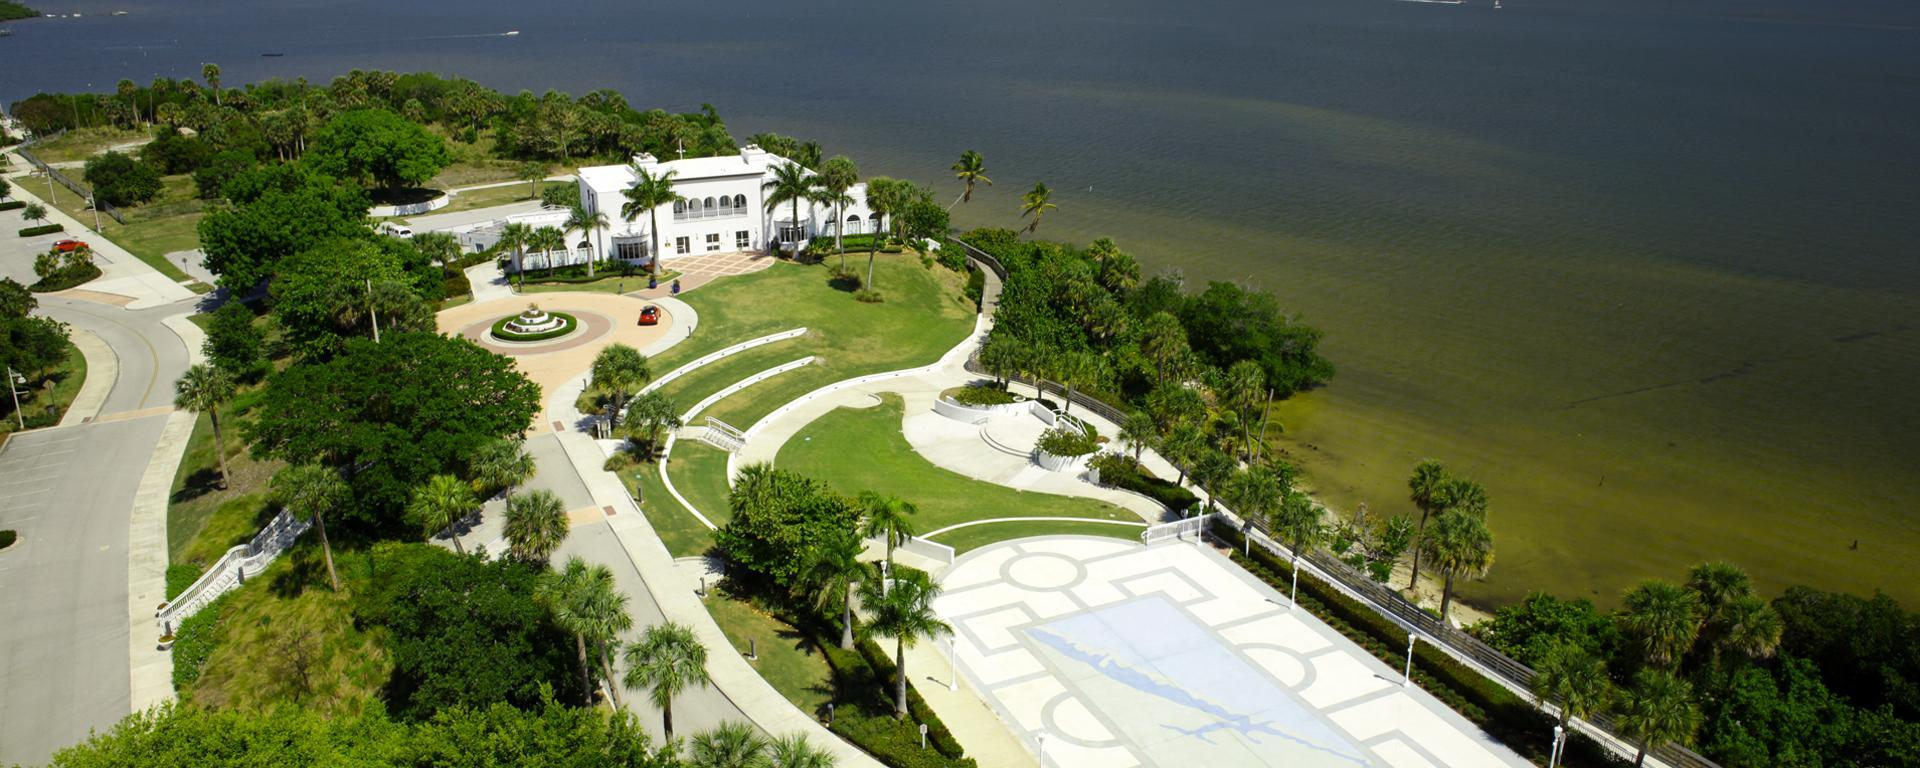 Aerial of the Mansion of Tuckahoe along the St. Lucie River